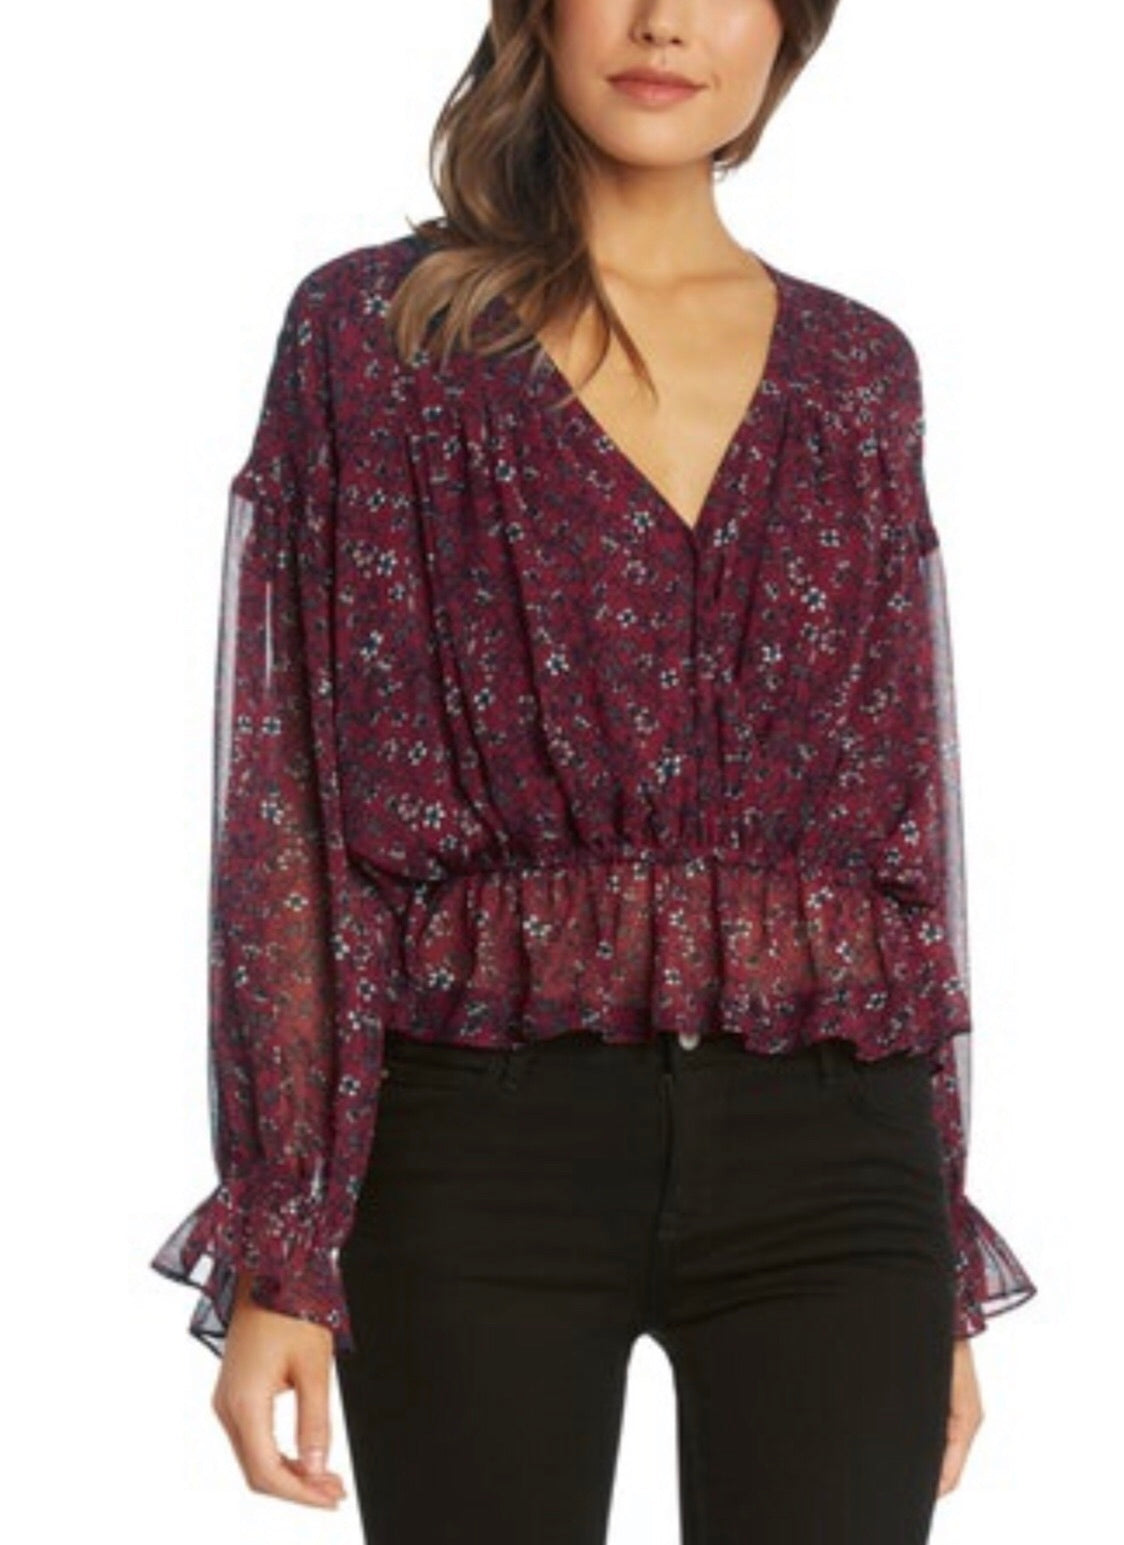 WC-Spice wrap Blouse